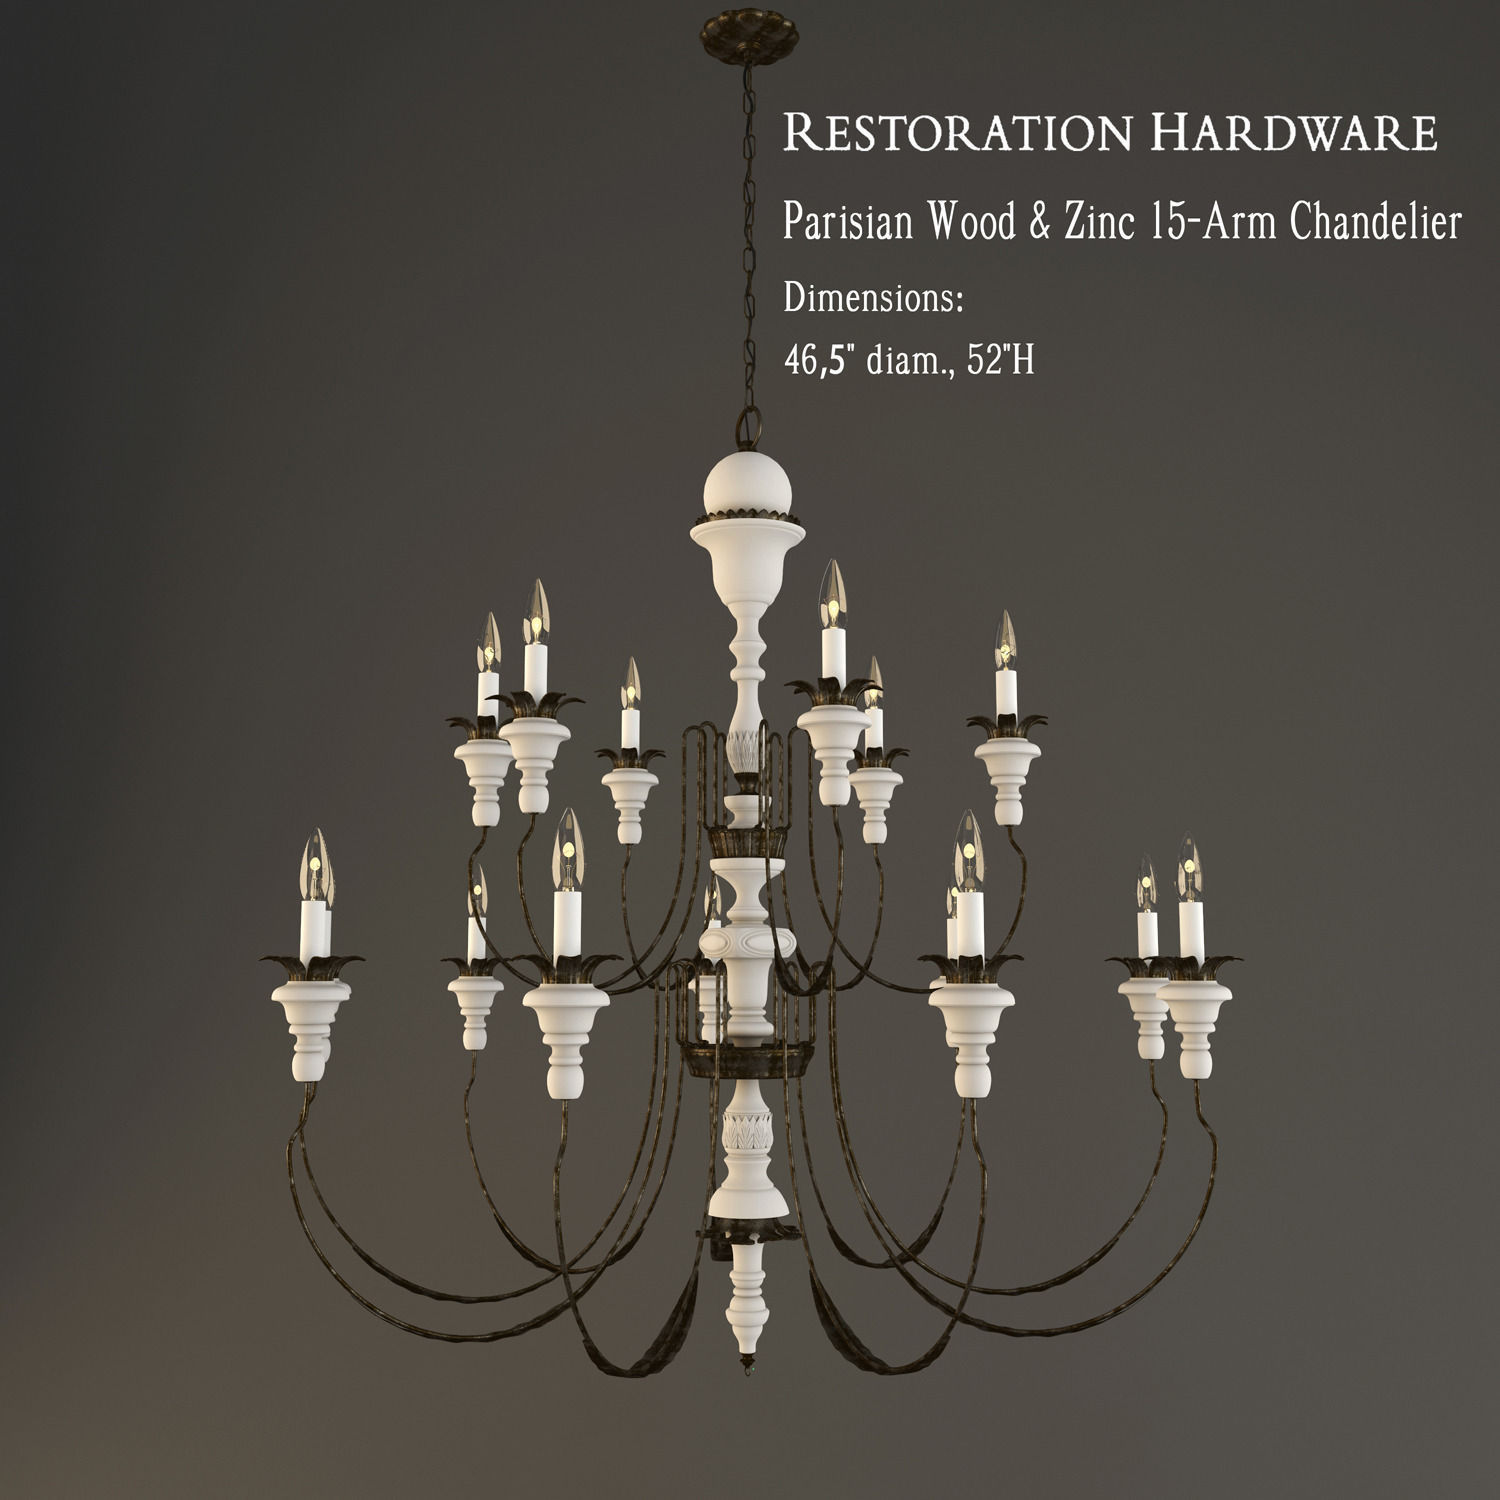 Restoration Hardware Parisian Wood and Zinc 15 Arm Chandelier 3D